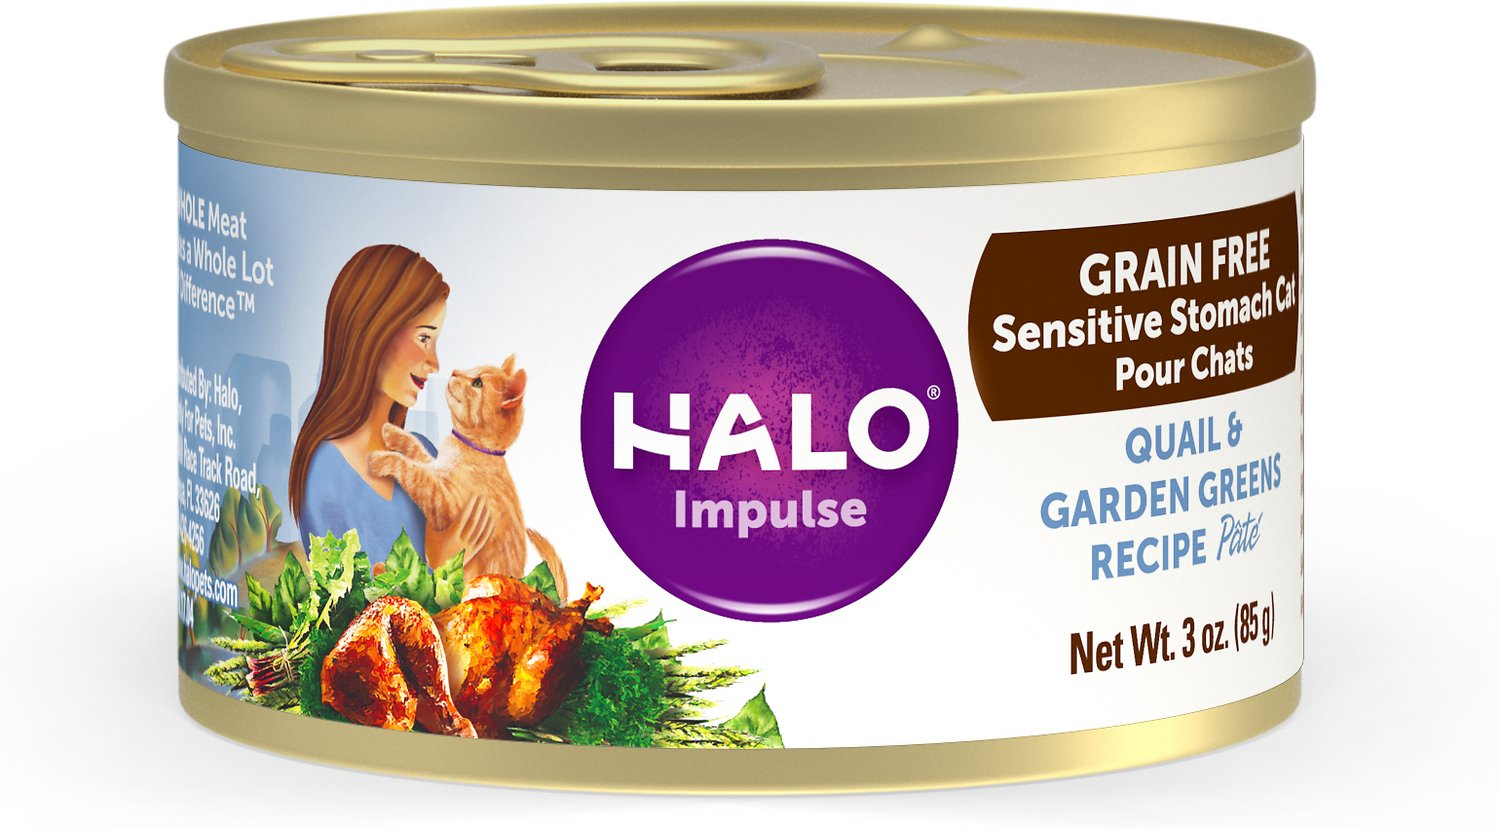 Halo Quail U0026 Garden Greens Recipe Grain Free Sensitive Stomach Canned Cat  Food, 5.5 Oz, Case Of 12